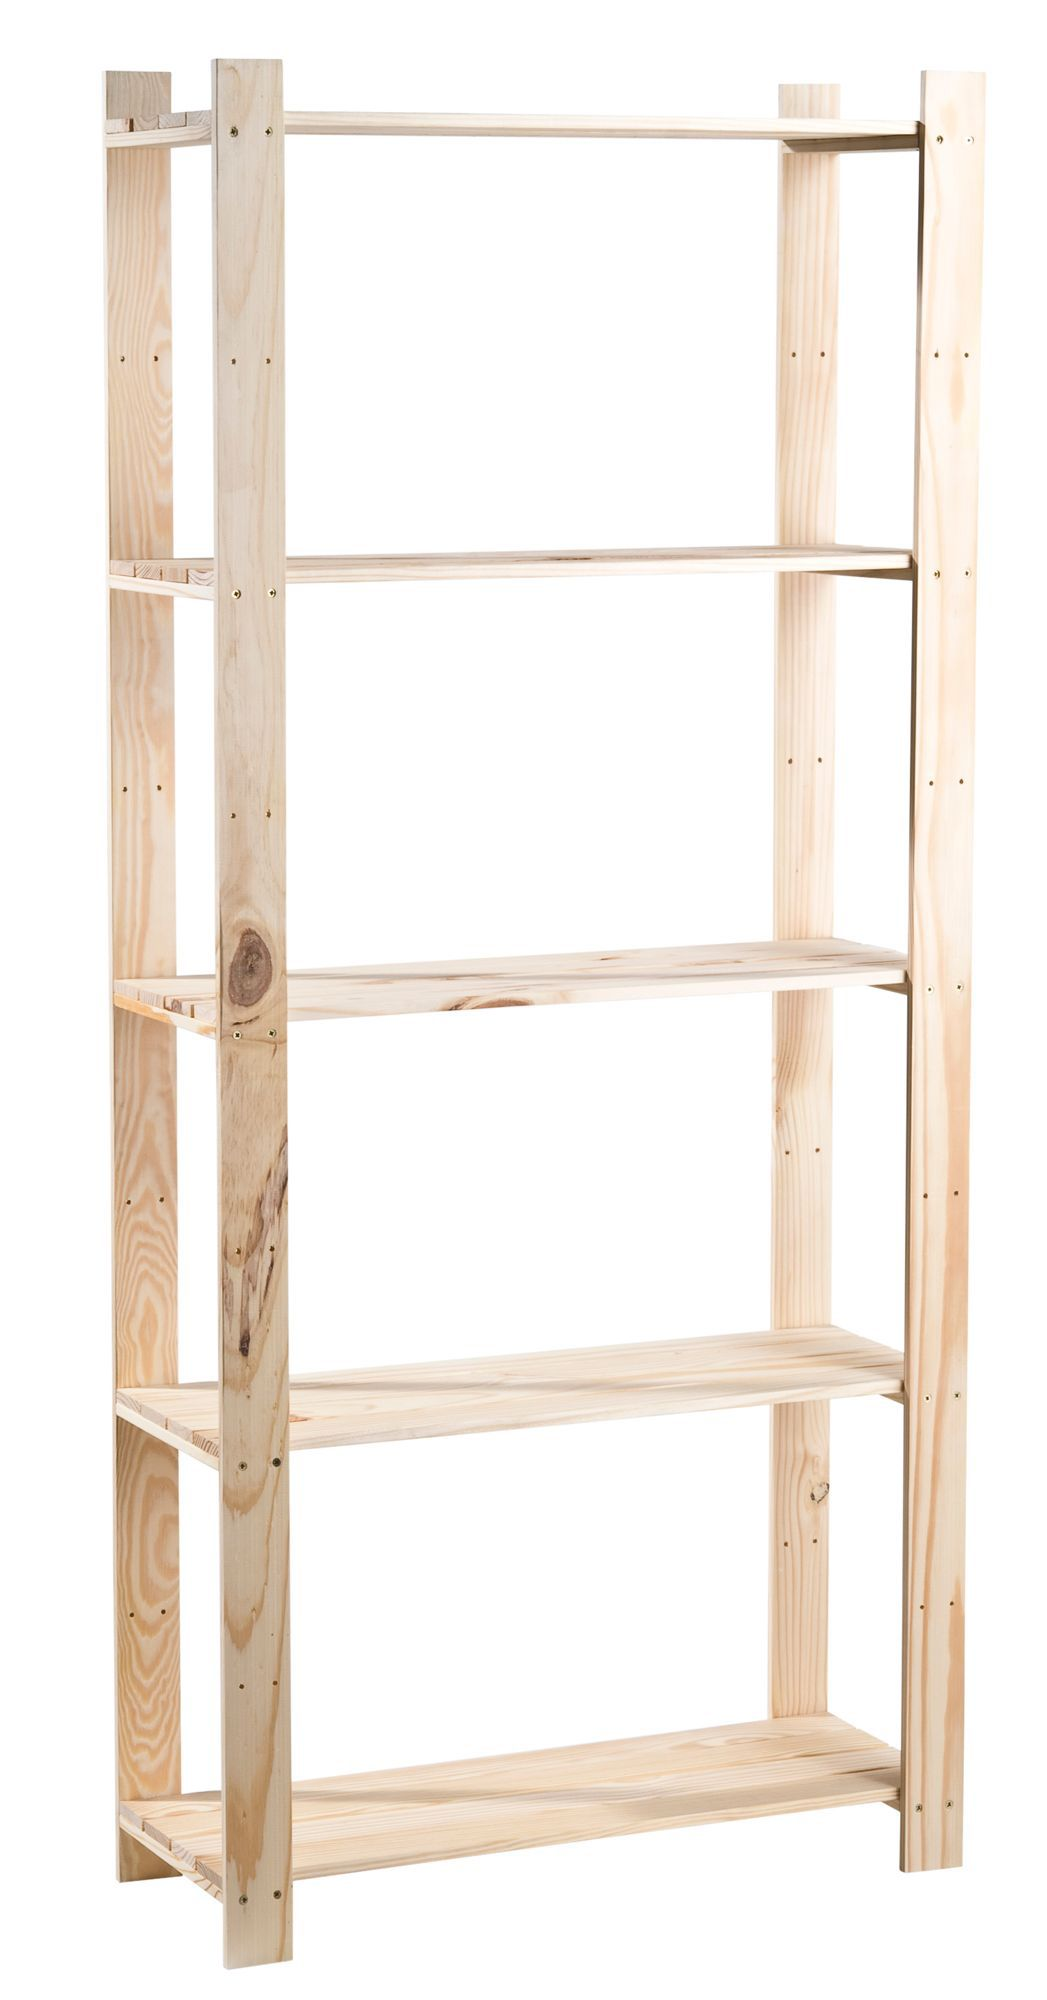 Natural Unfinished Shelving Unit L 1690mm D 295mm